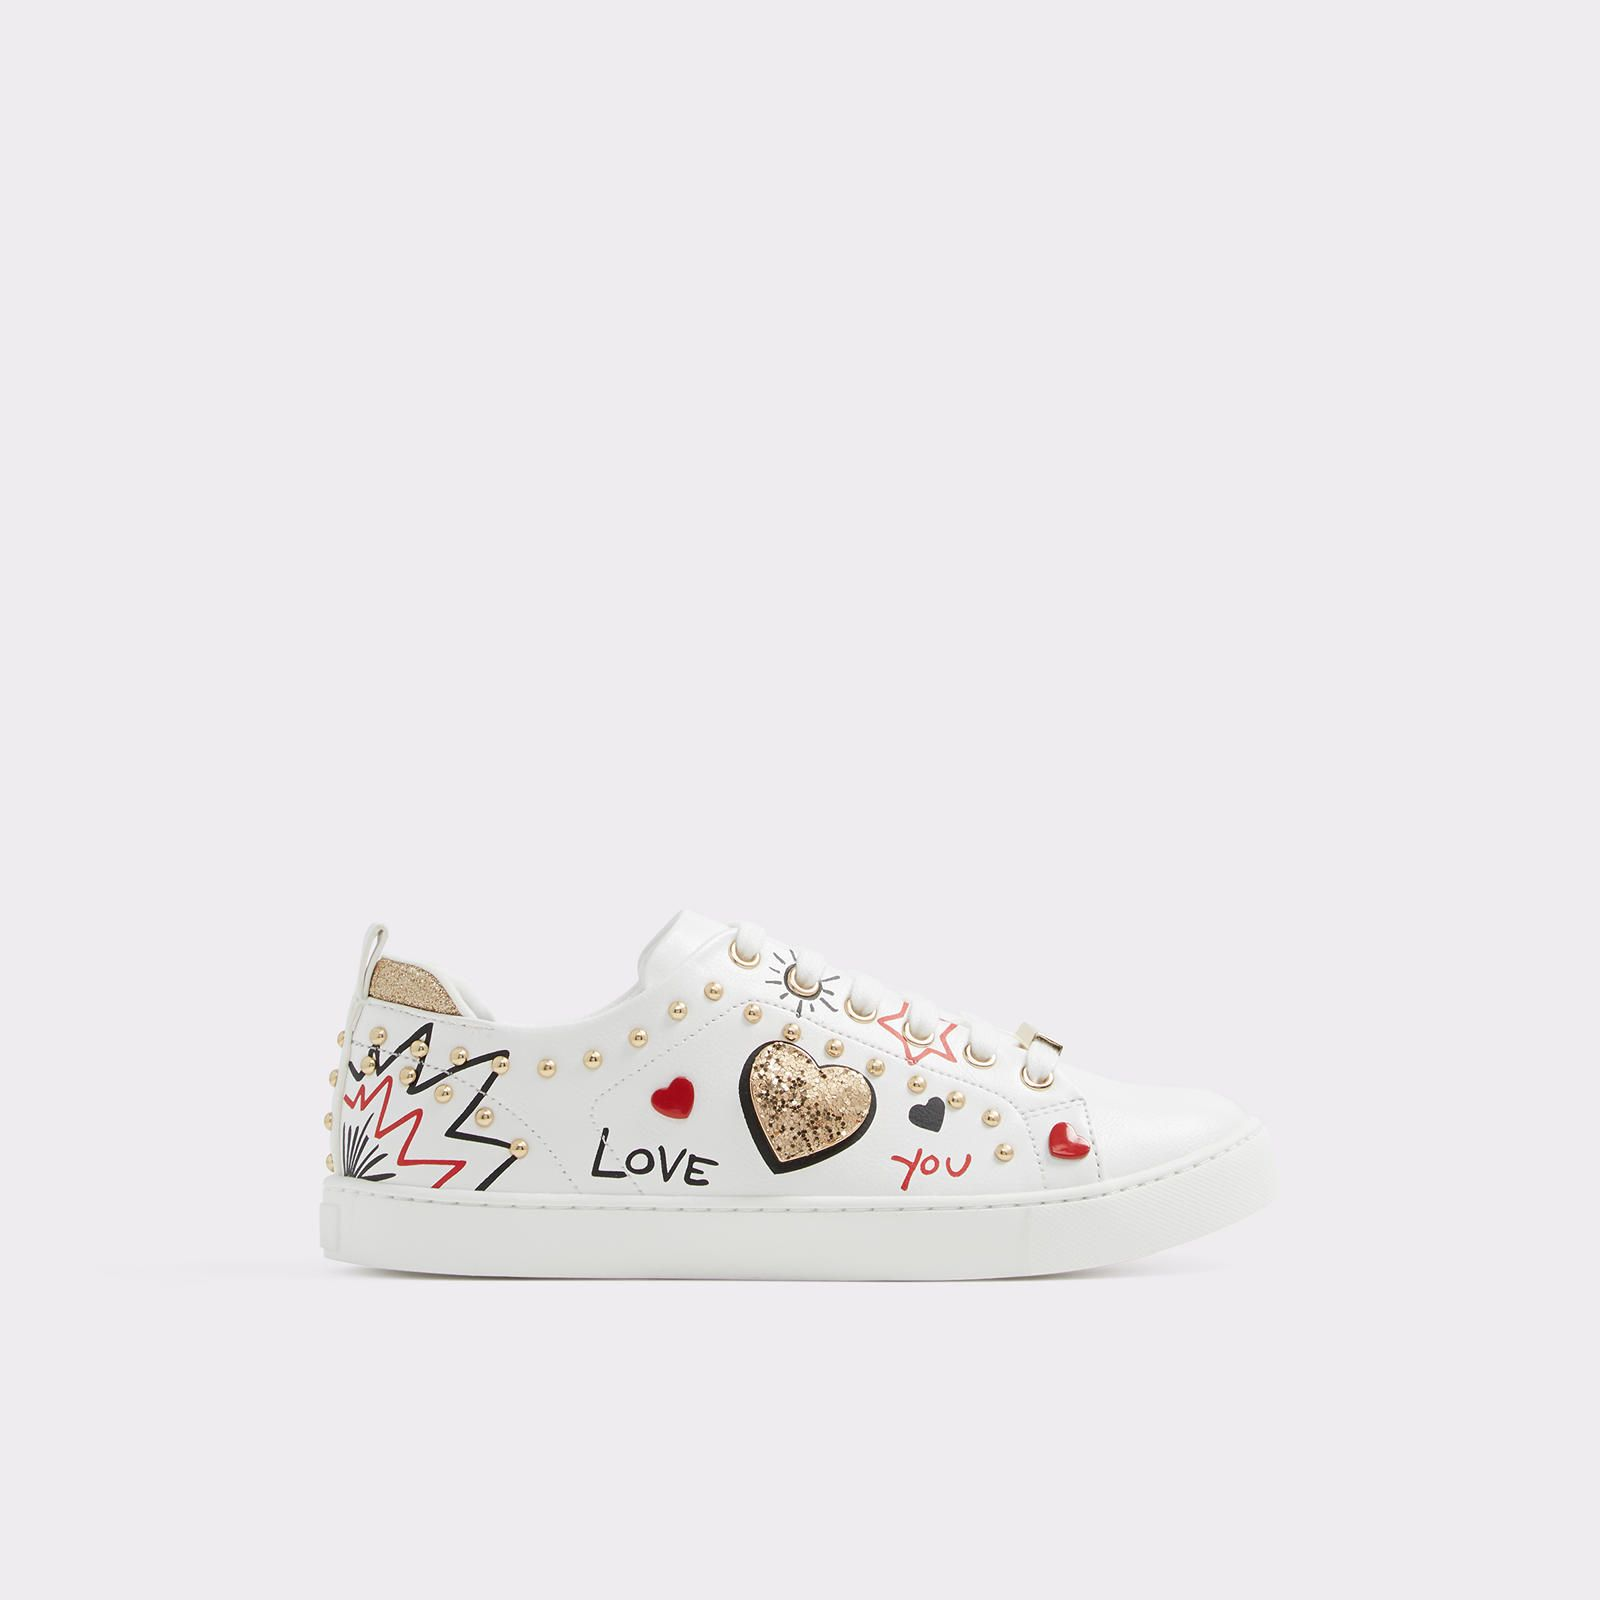 Sponaugle White By Aldo Shoes Main Aldo Shoes Women Leather Shoes Woman Womens Sneakers